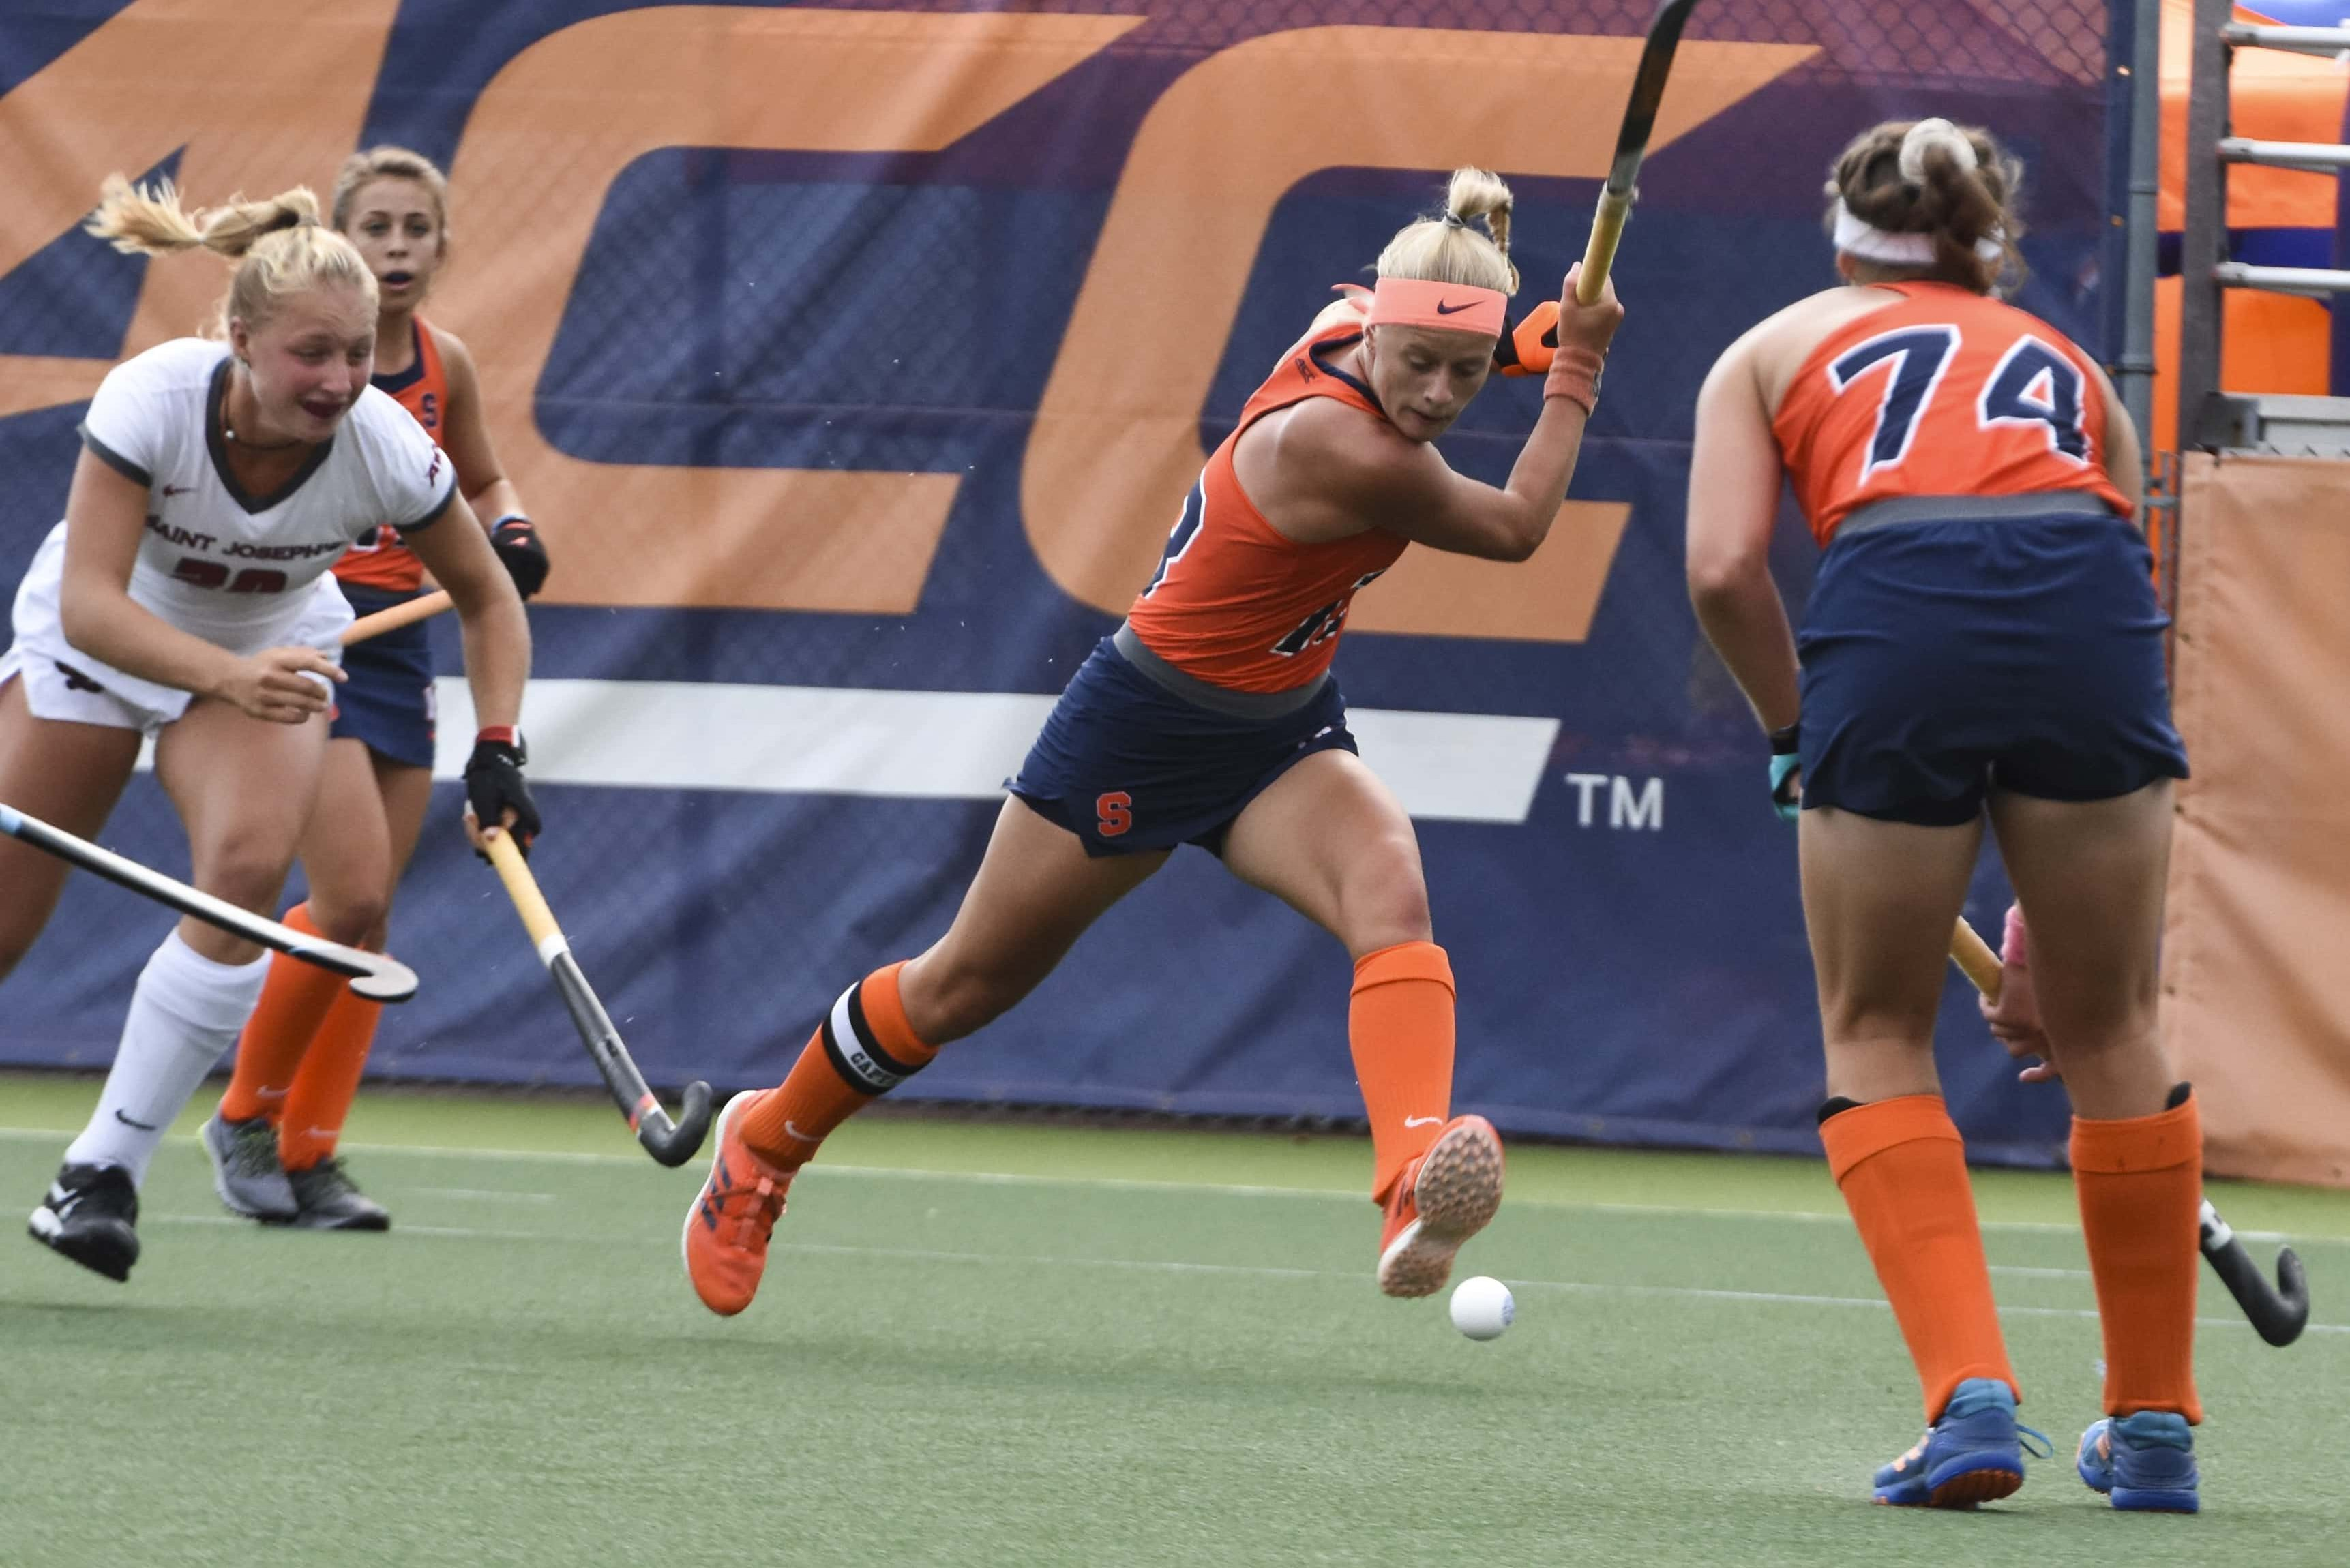 Charlotte De Vries sends the ball across the field for a Syracuse Field Hockey gain.